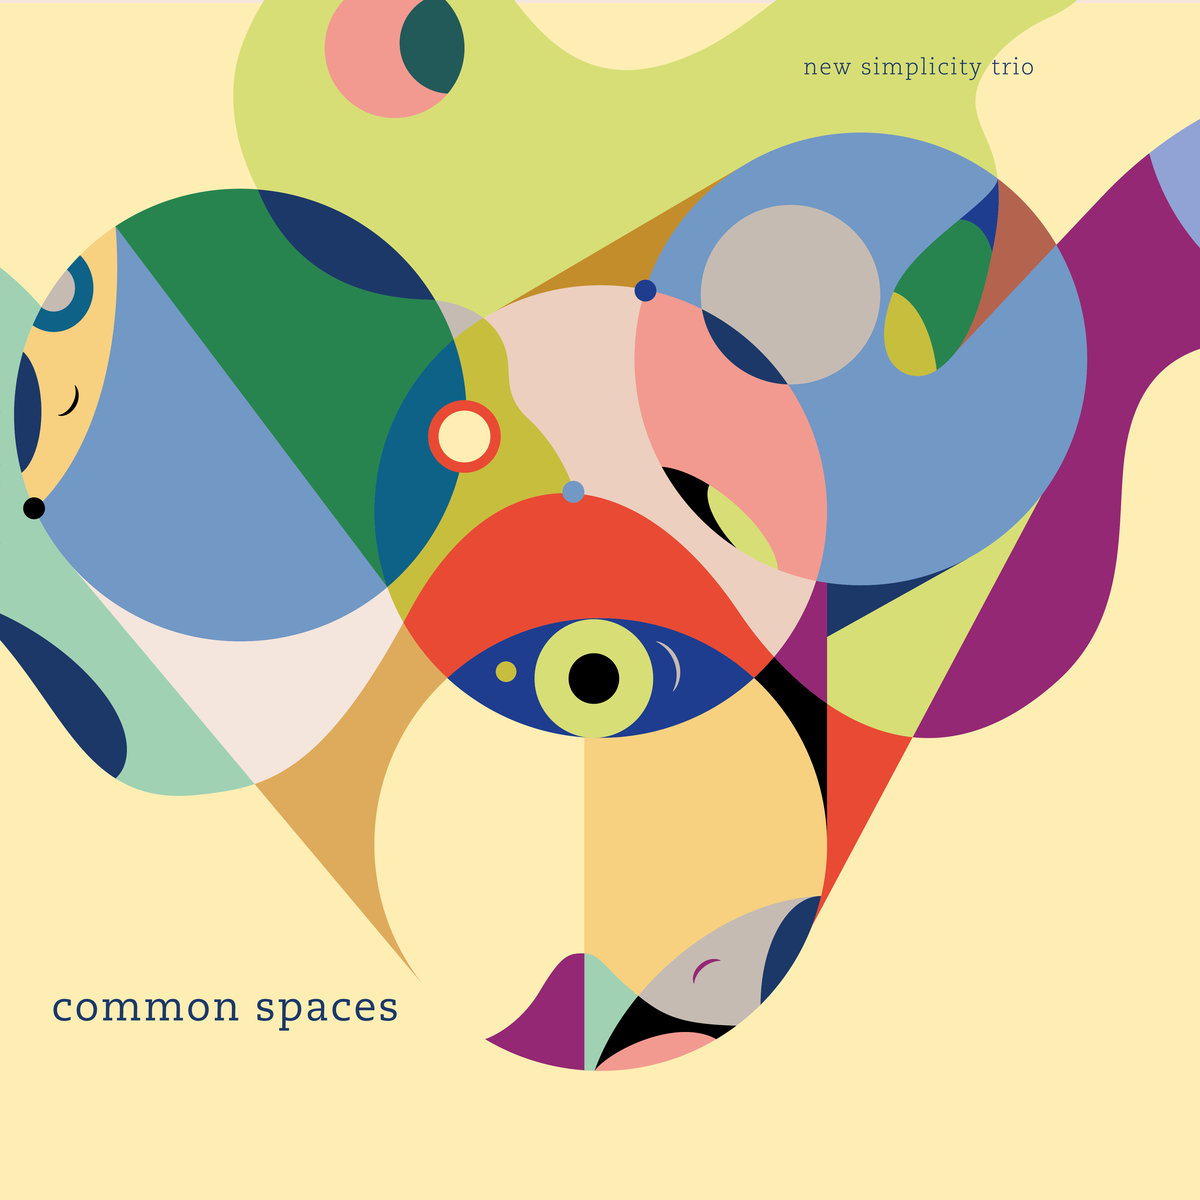 Riosrap clipart trio COMMON Babel by SPACES Label